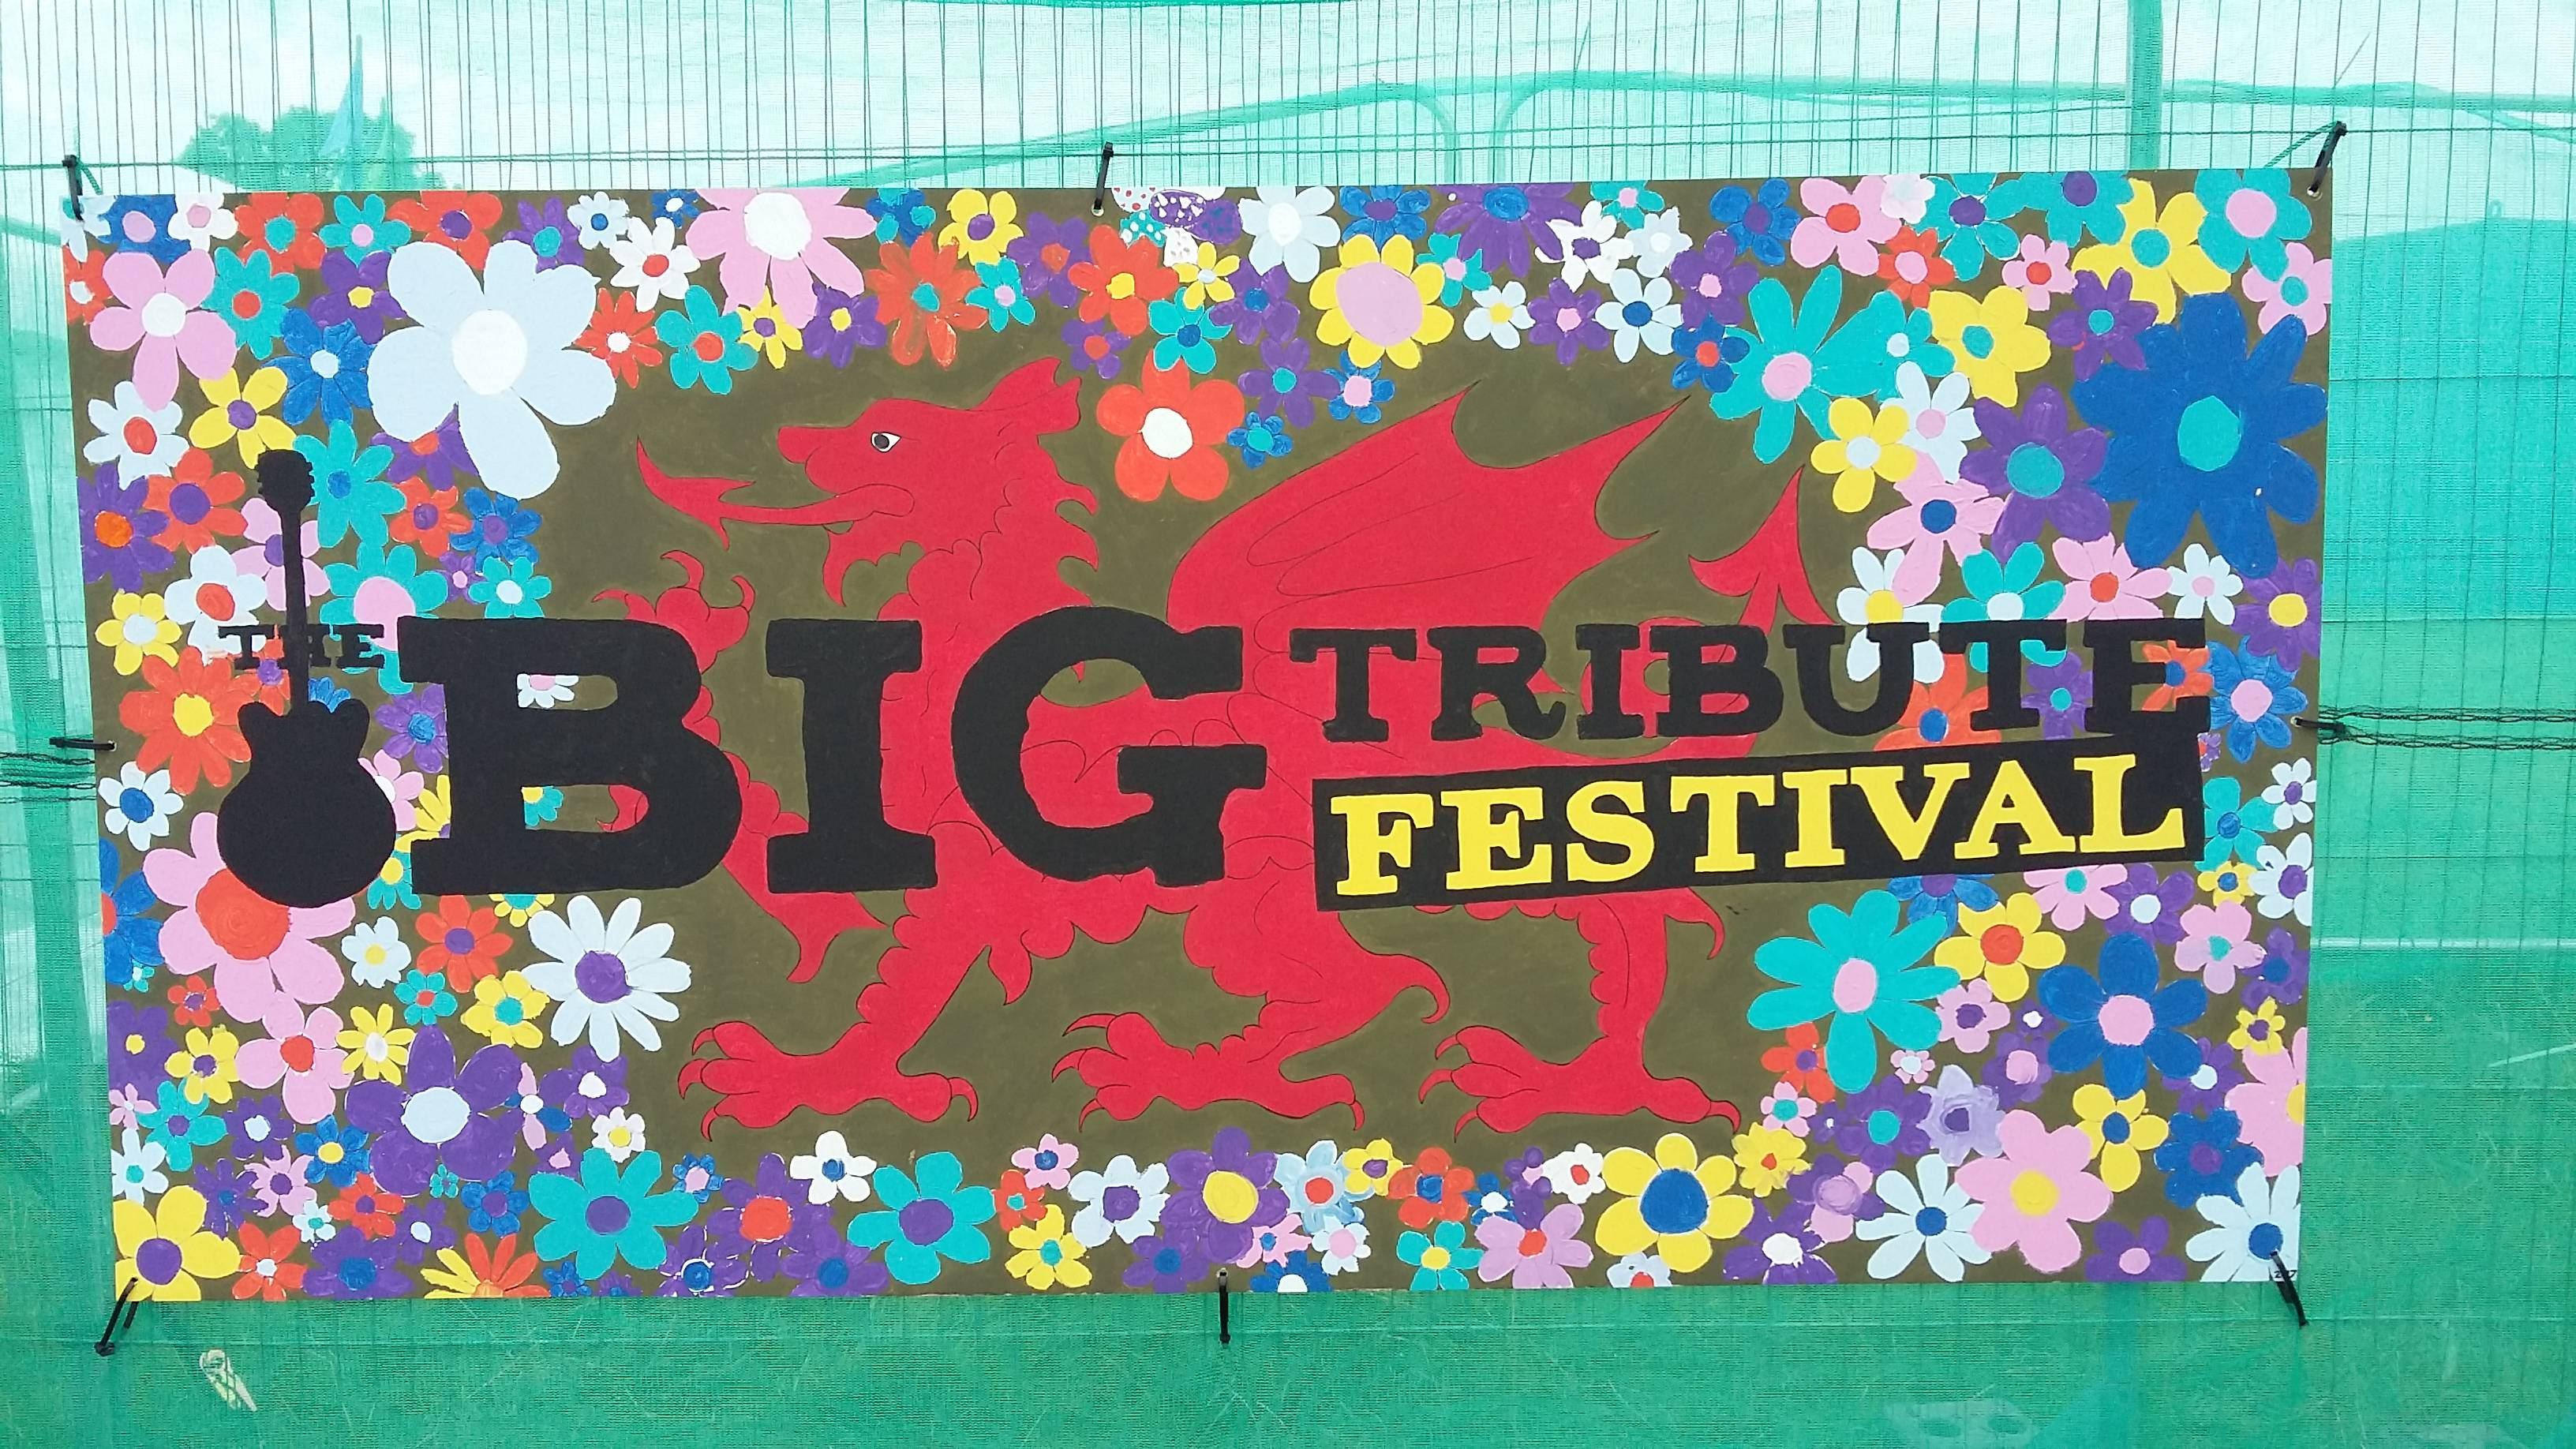 Big art on display at the festival entrance 2017